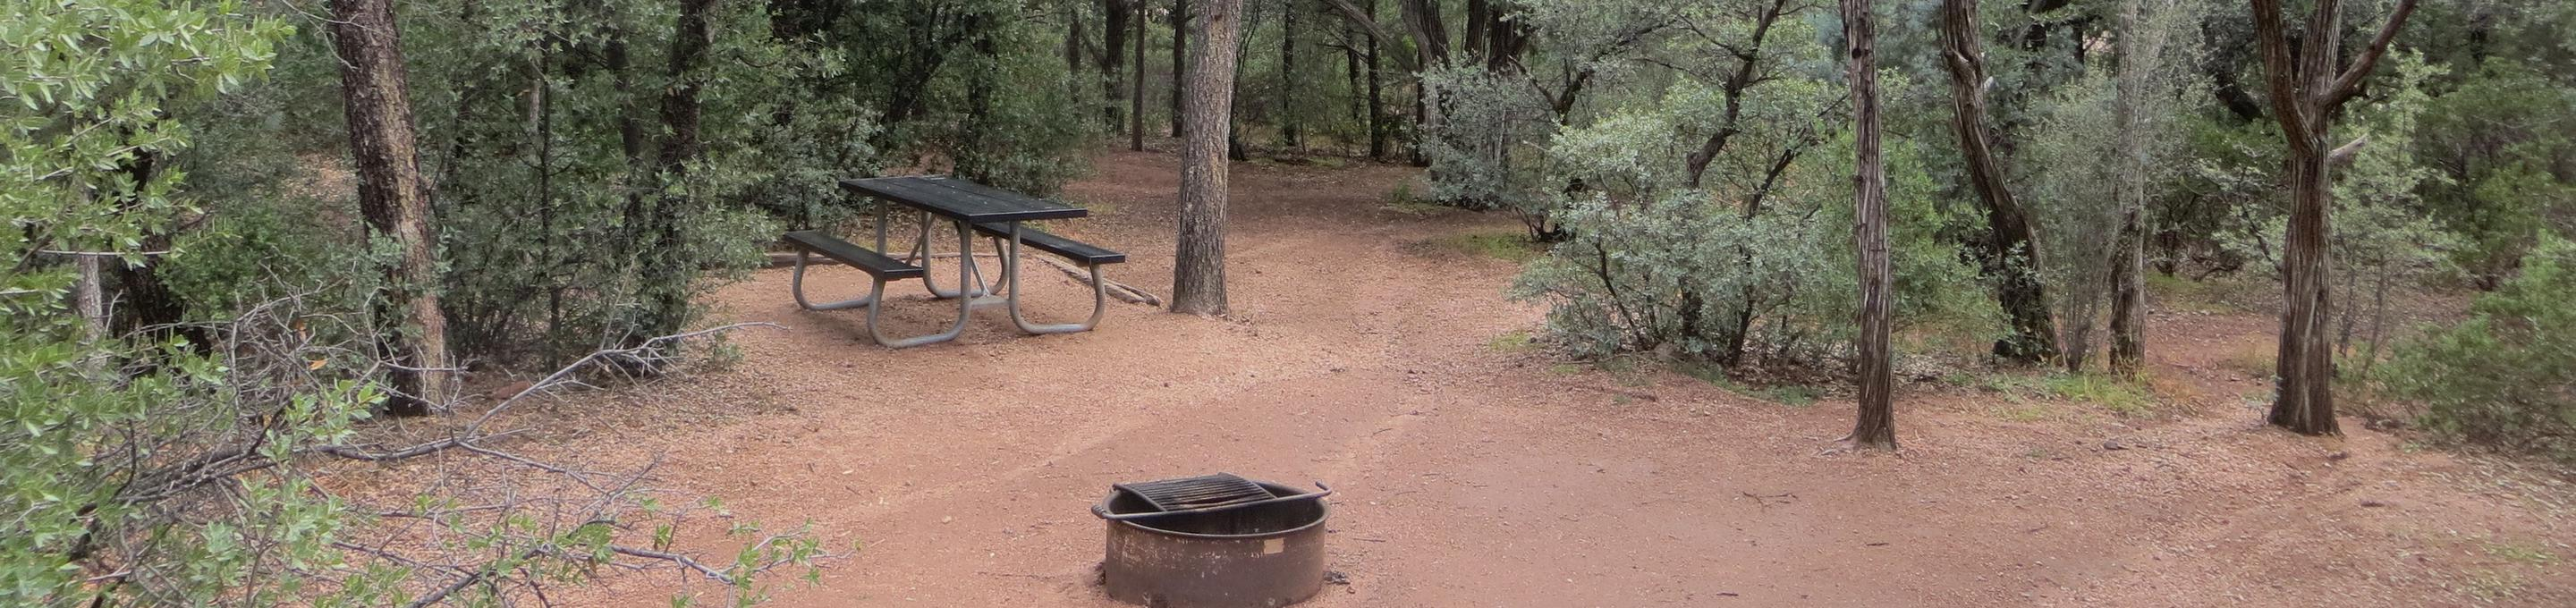 Houston Mesa, Mountain Lion Loop site #12 featuring the wooded picnic area, camping space and fire pit.